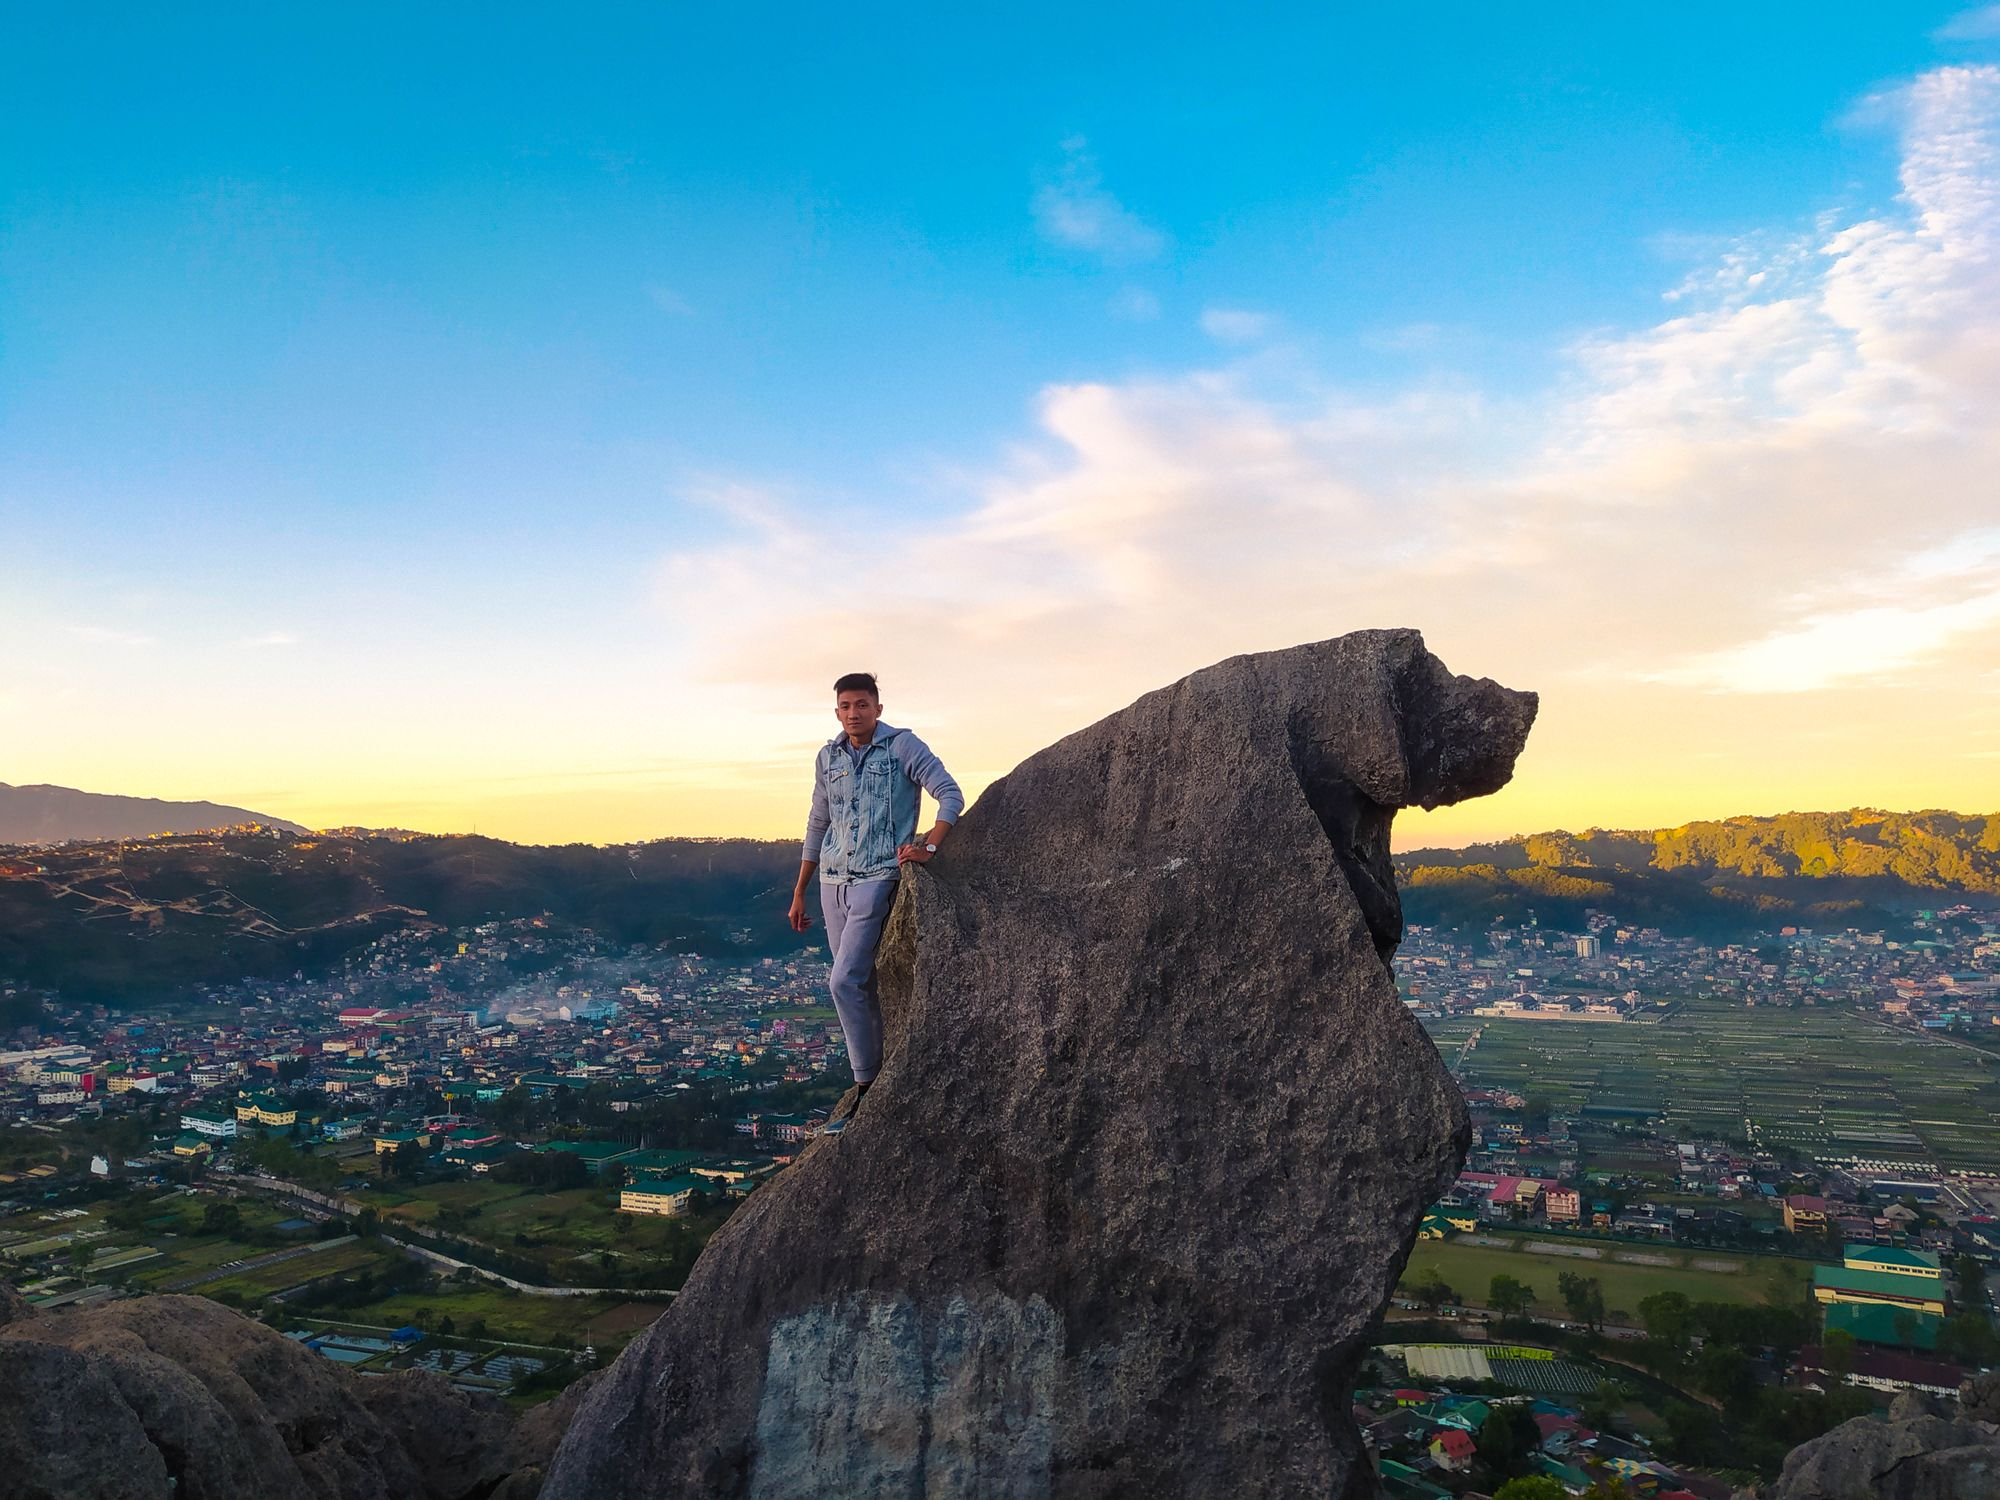 Man standing on a large rock overlooking a valley town surrounded by hills and mountains beneath a morning sky